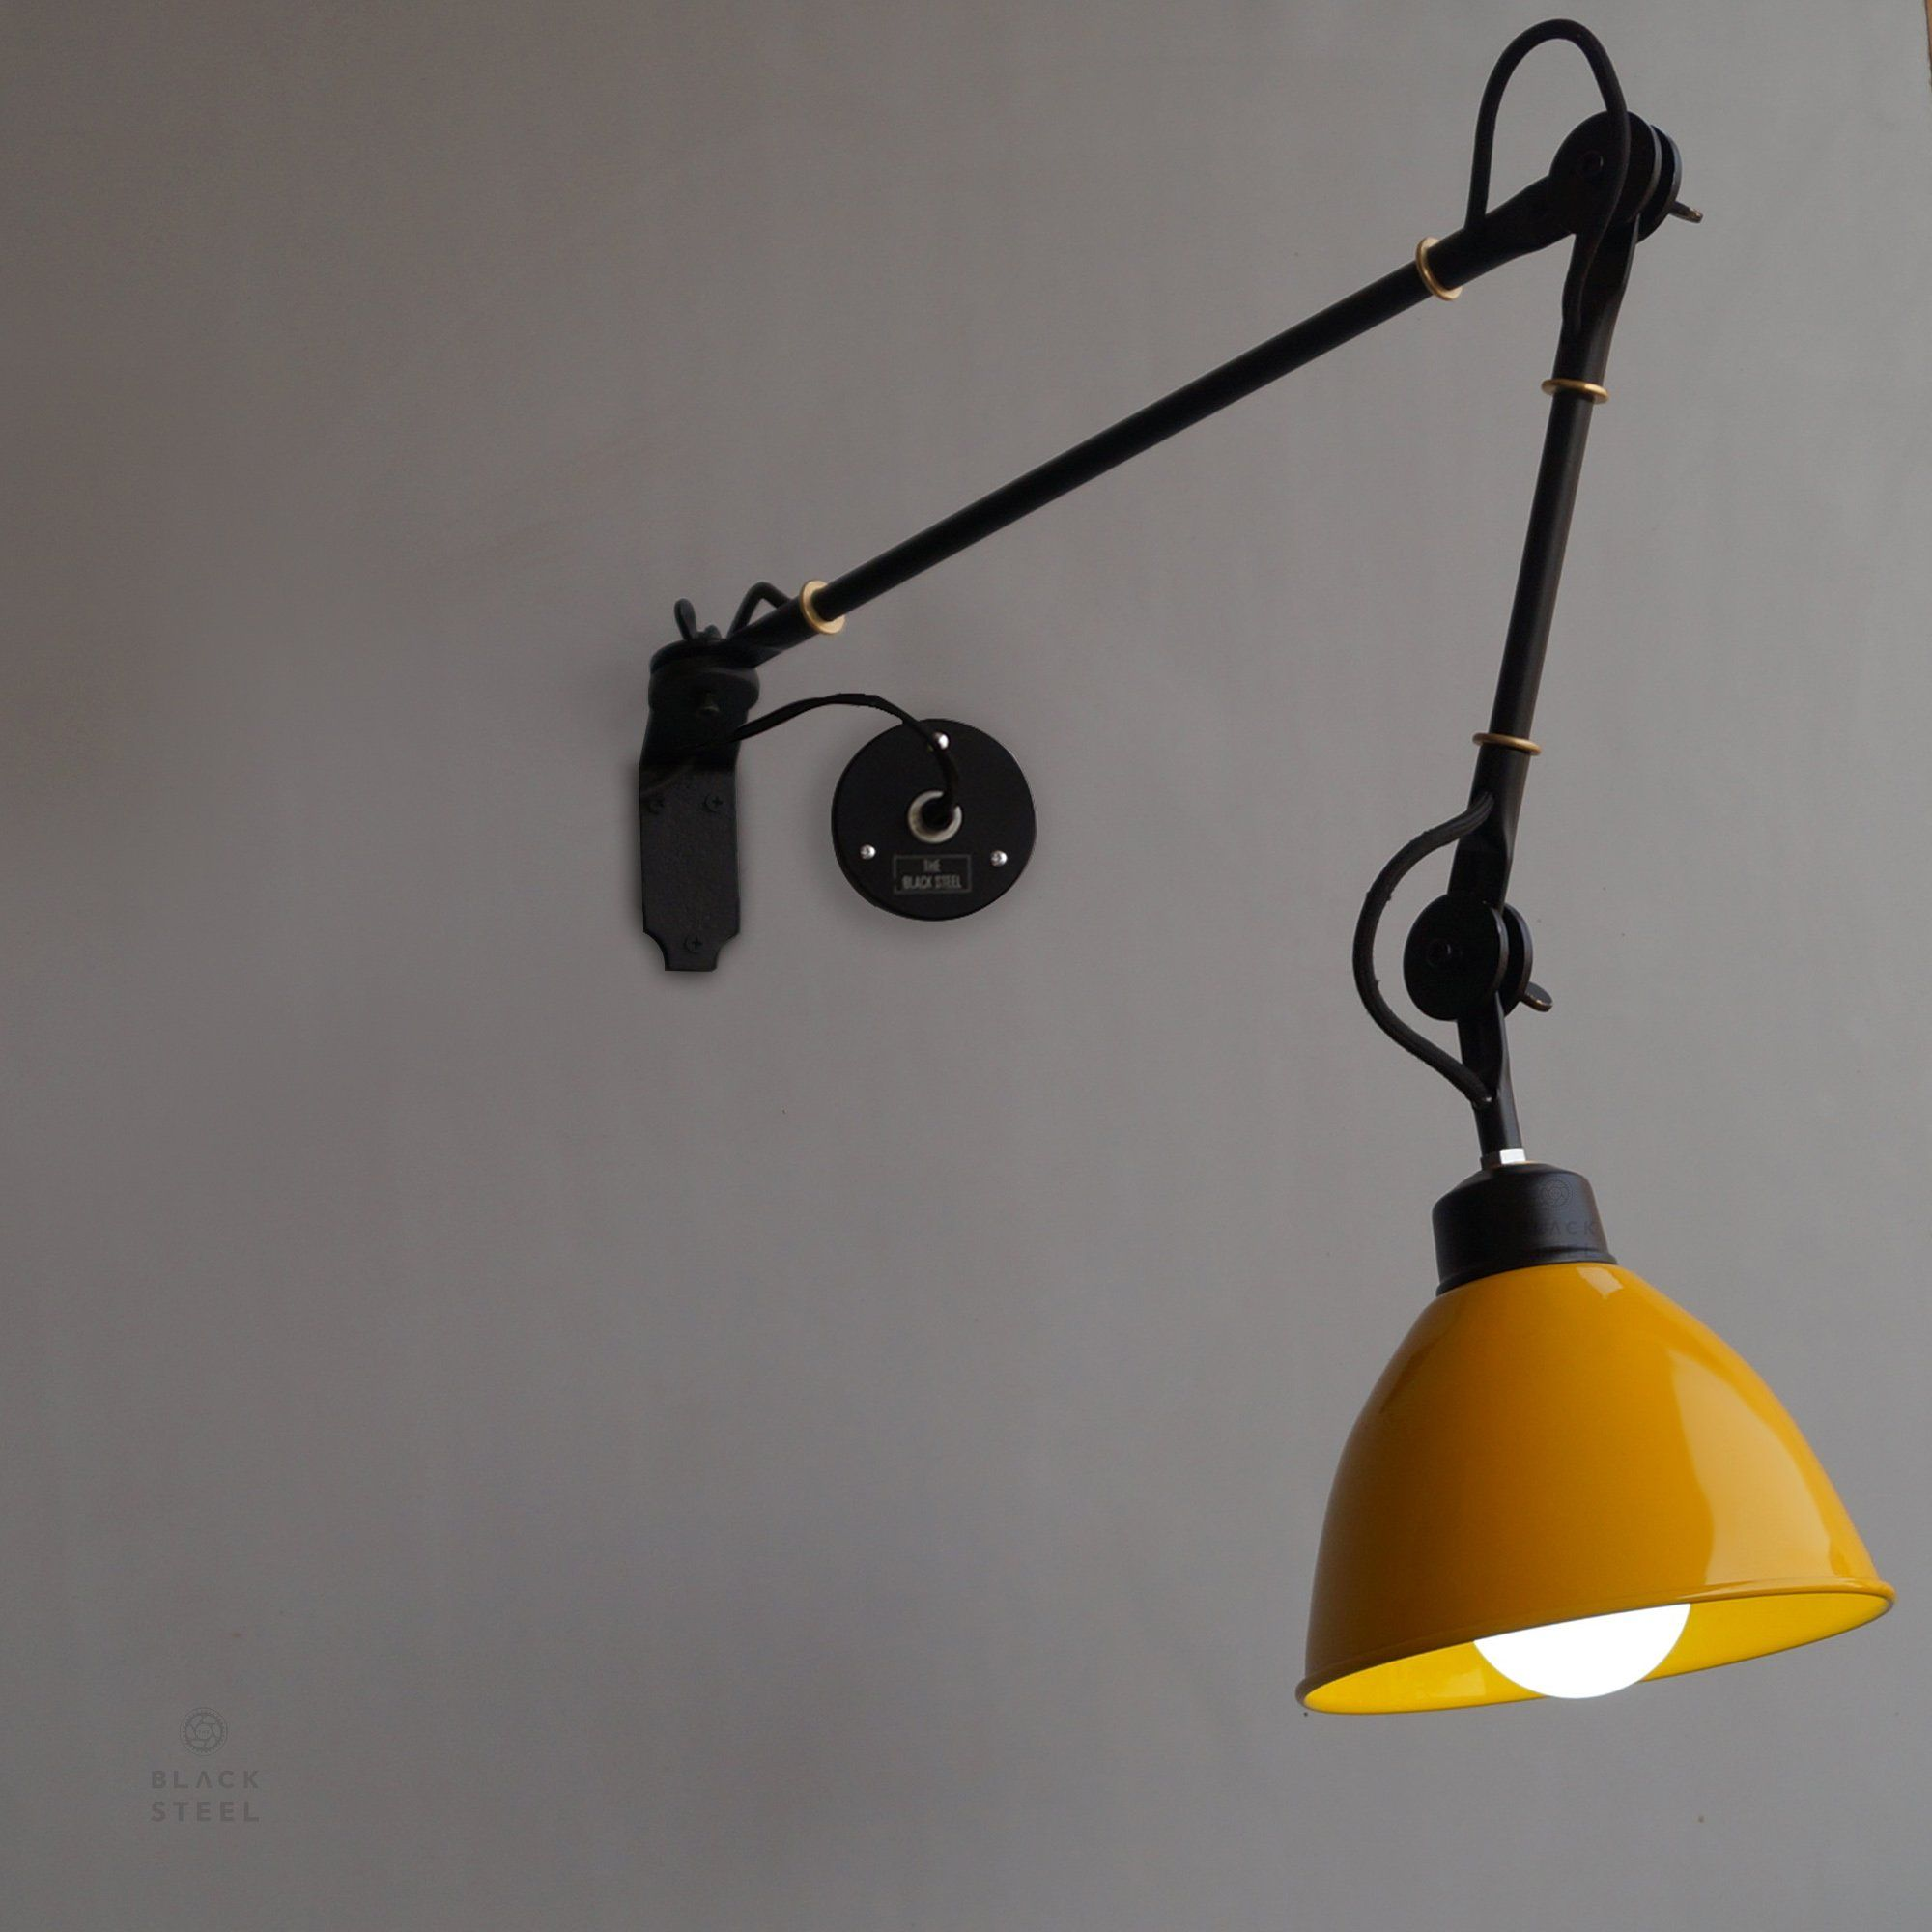 Yellow Wall Sconce De Stijl Inspired Swing Arm Wall Mounted Light V3 0 Black Wall Lamps Wall Mounted Lamps Wall Mounted Light